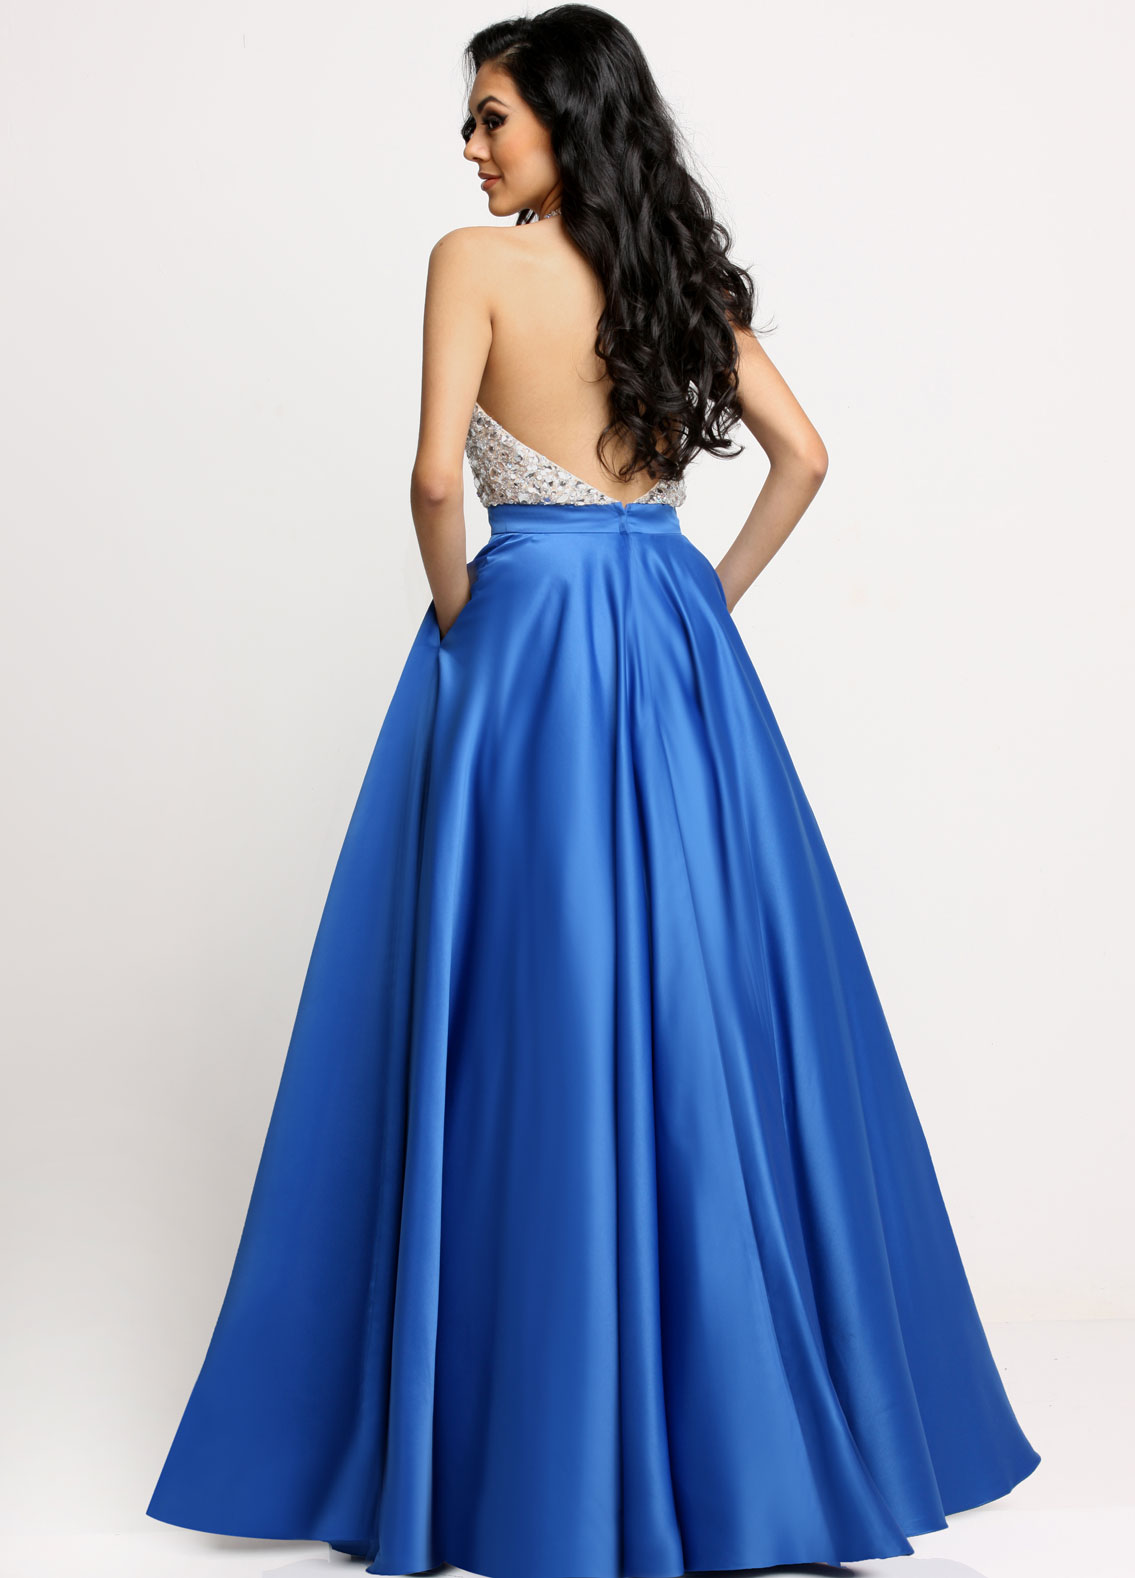 Image showing back view of style #71633